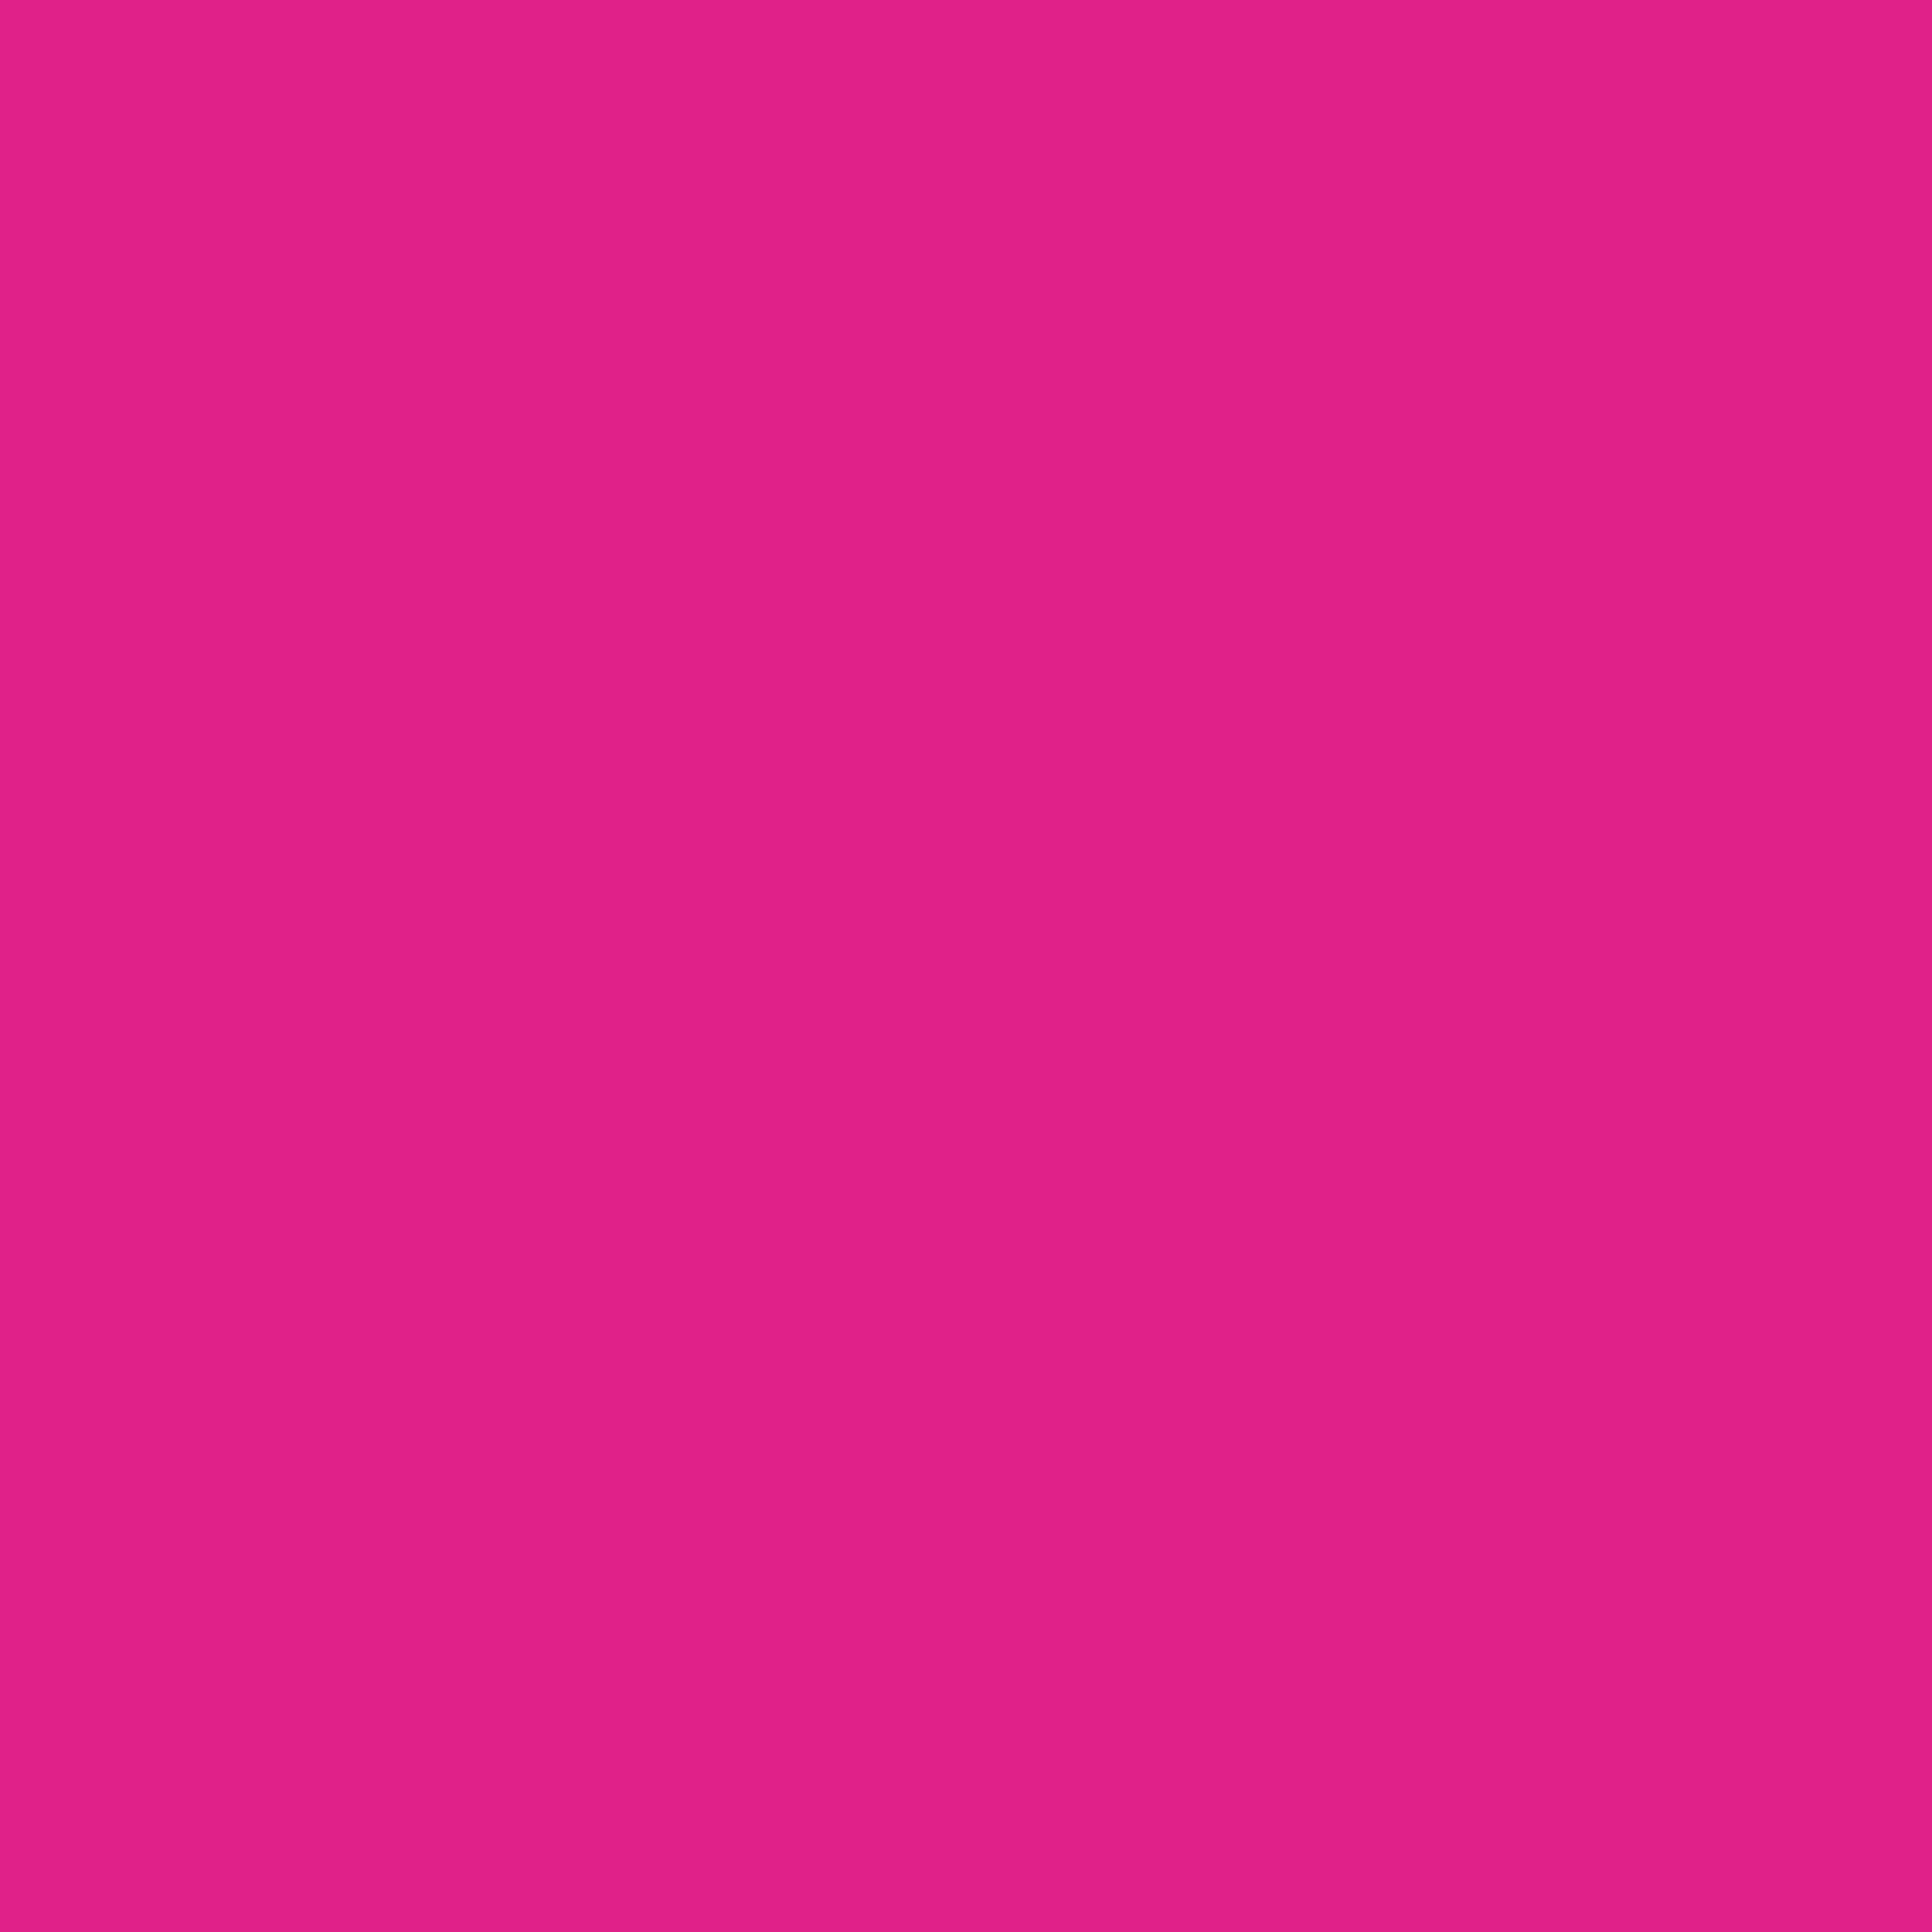 3600x3600 Barbie Pink Solid Color Background